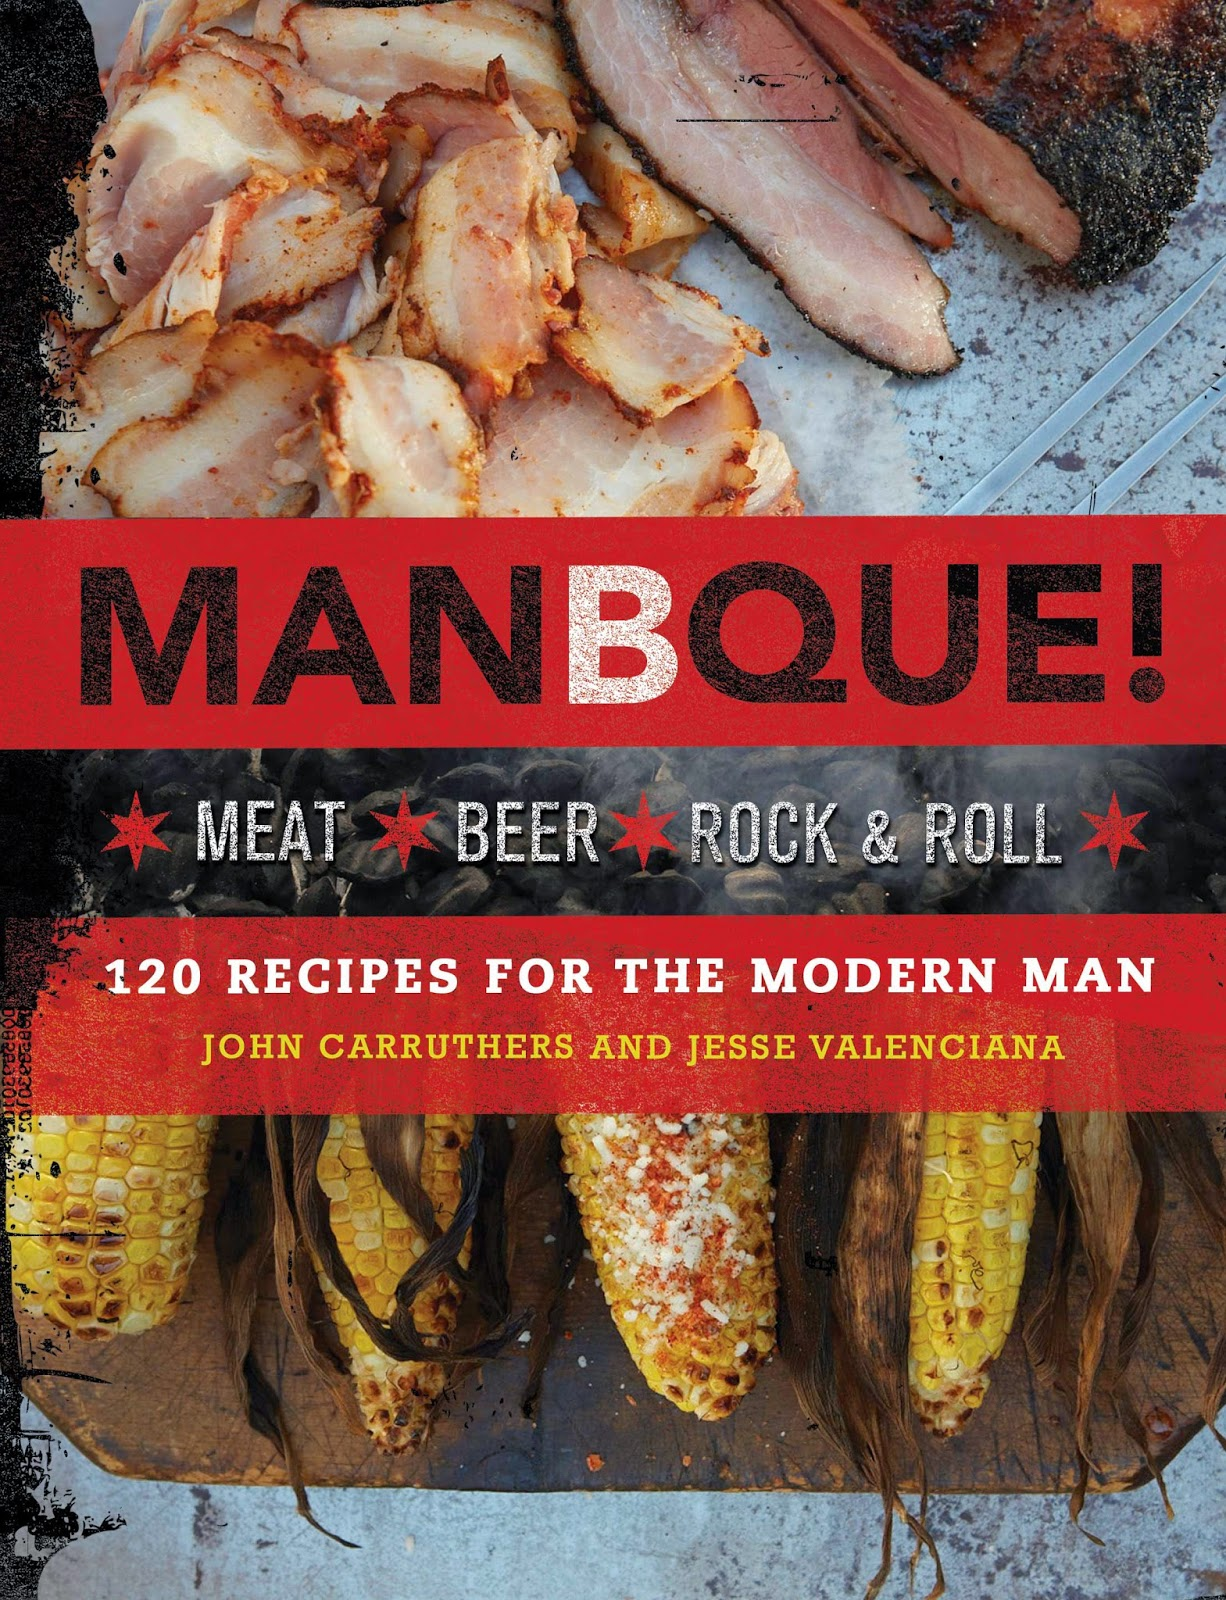 http://www.amazon.com/ManBQue-Meat-Beer-Rock-Roll/dp/0762451173/ref=sr_1_1?ie=UTF8&qid=1403444631&sr=8-1&keywords=manbque